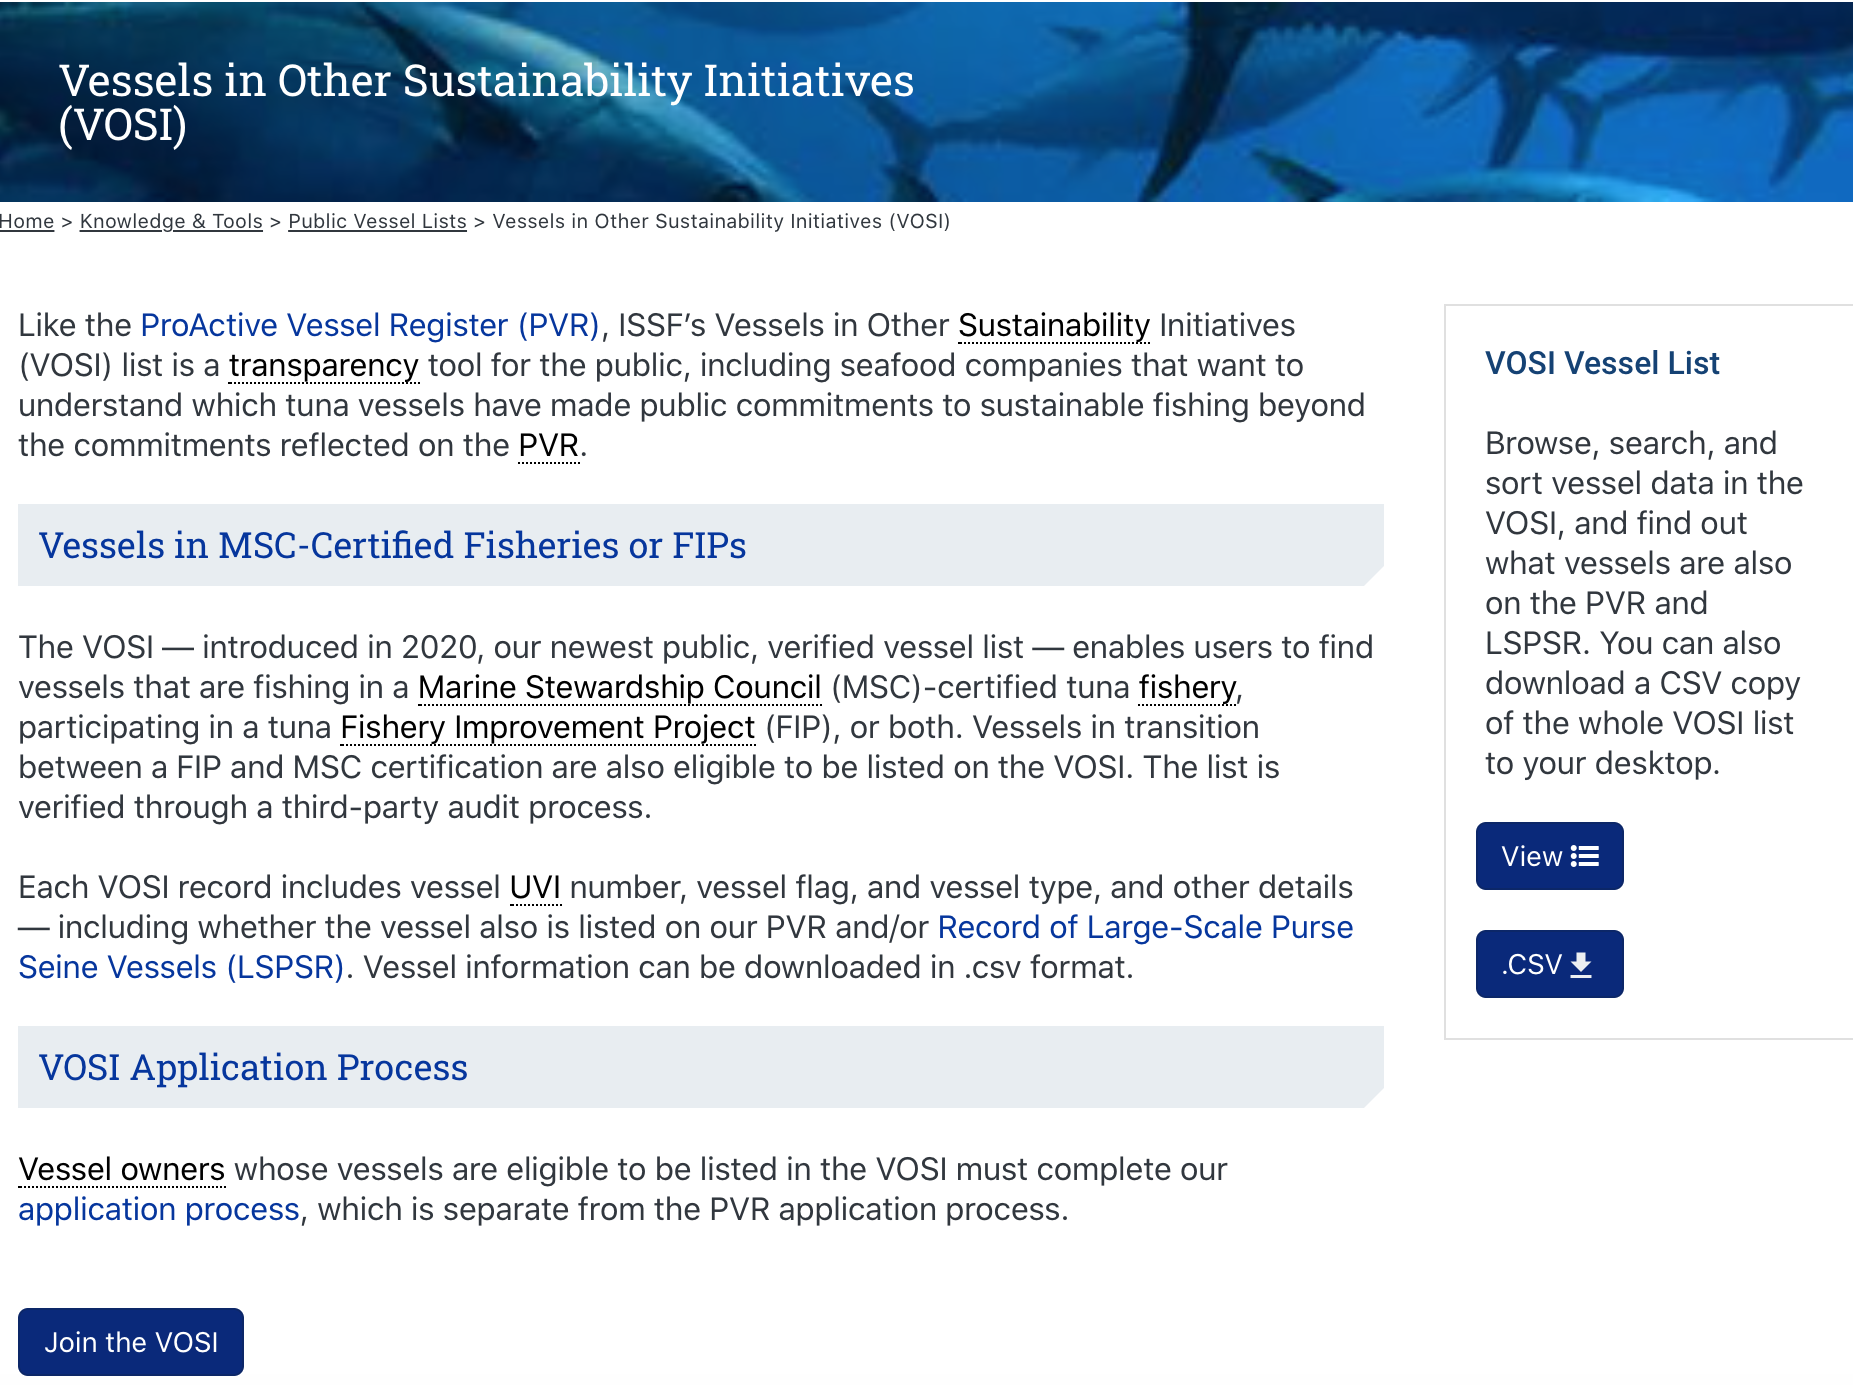 Vessels in Other Sustainability Initiatives (VOSI)